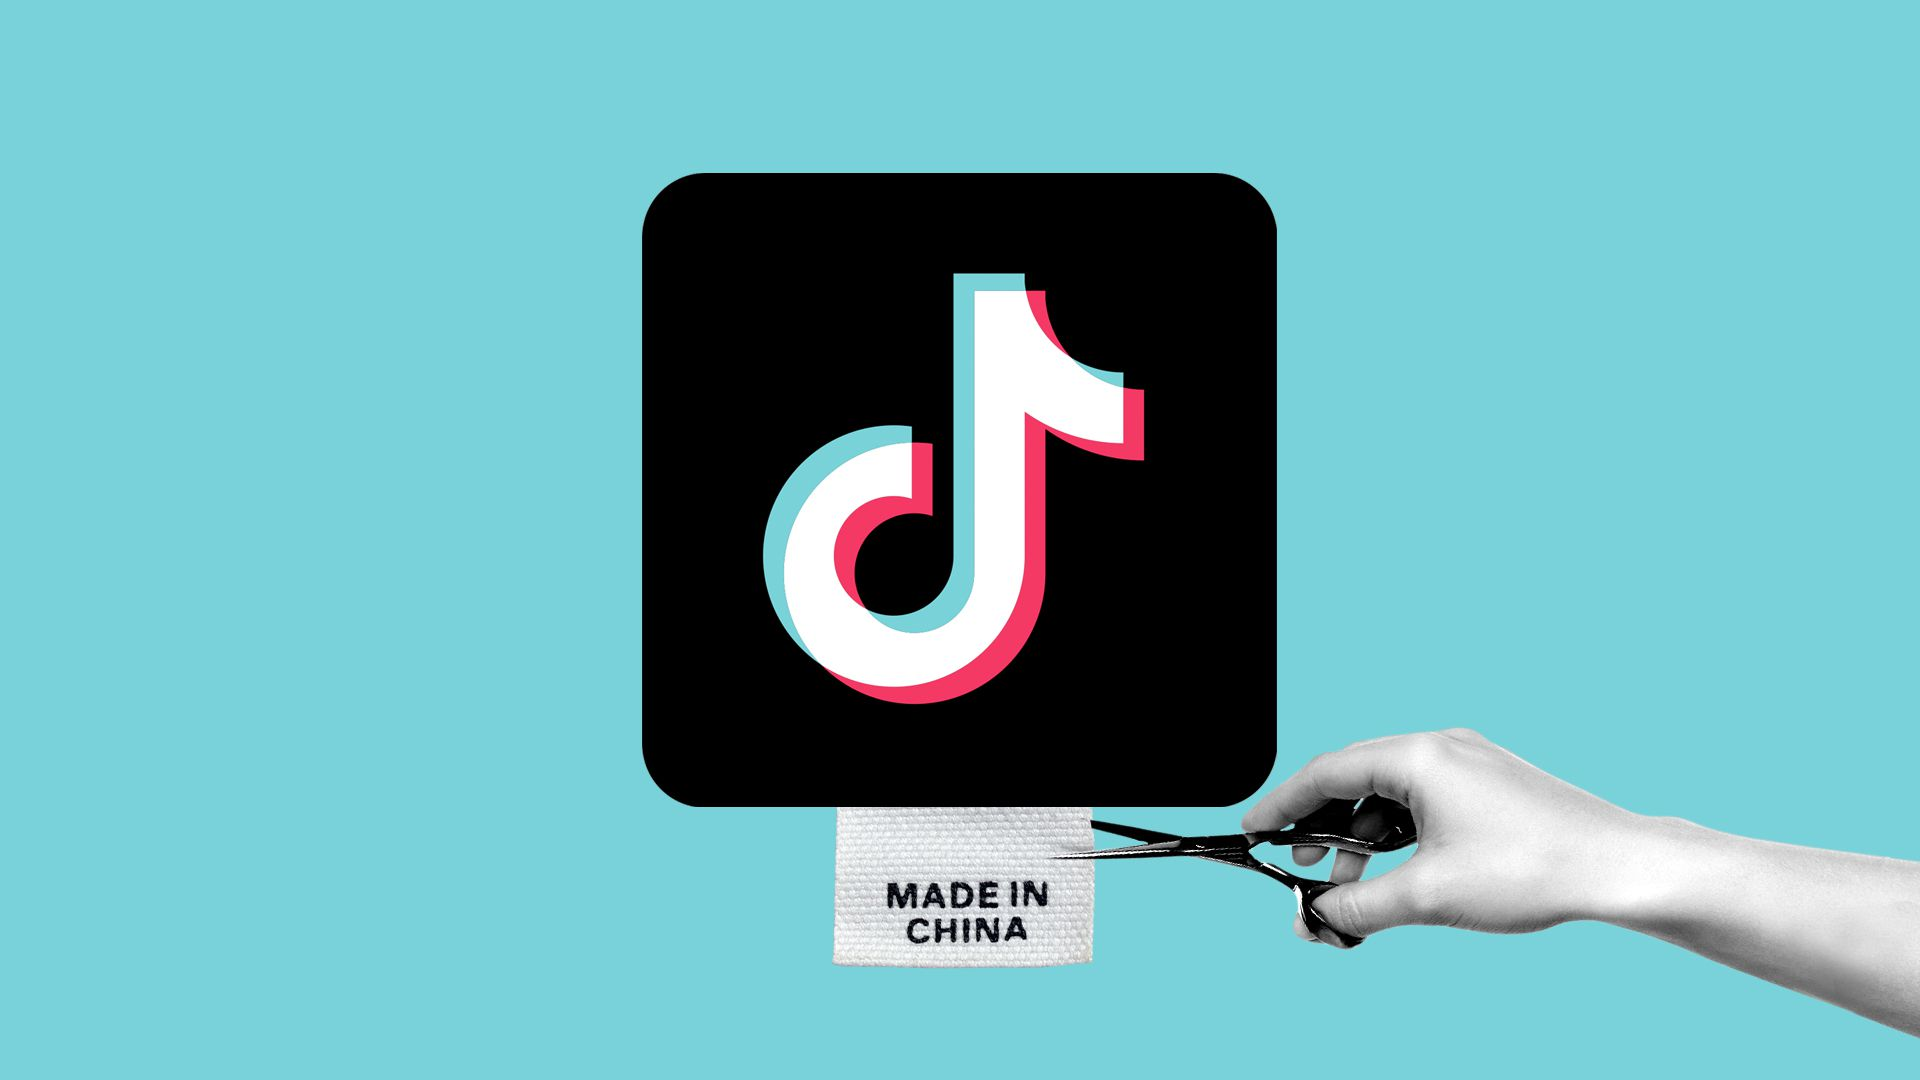 Illustration of a TikTok logo with a Made in China tag being cut off.